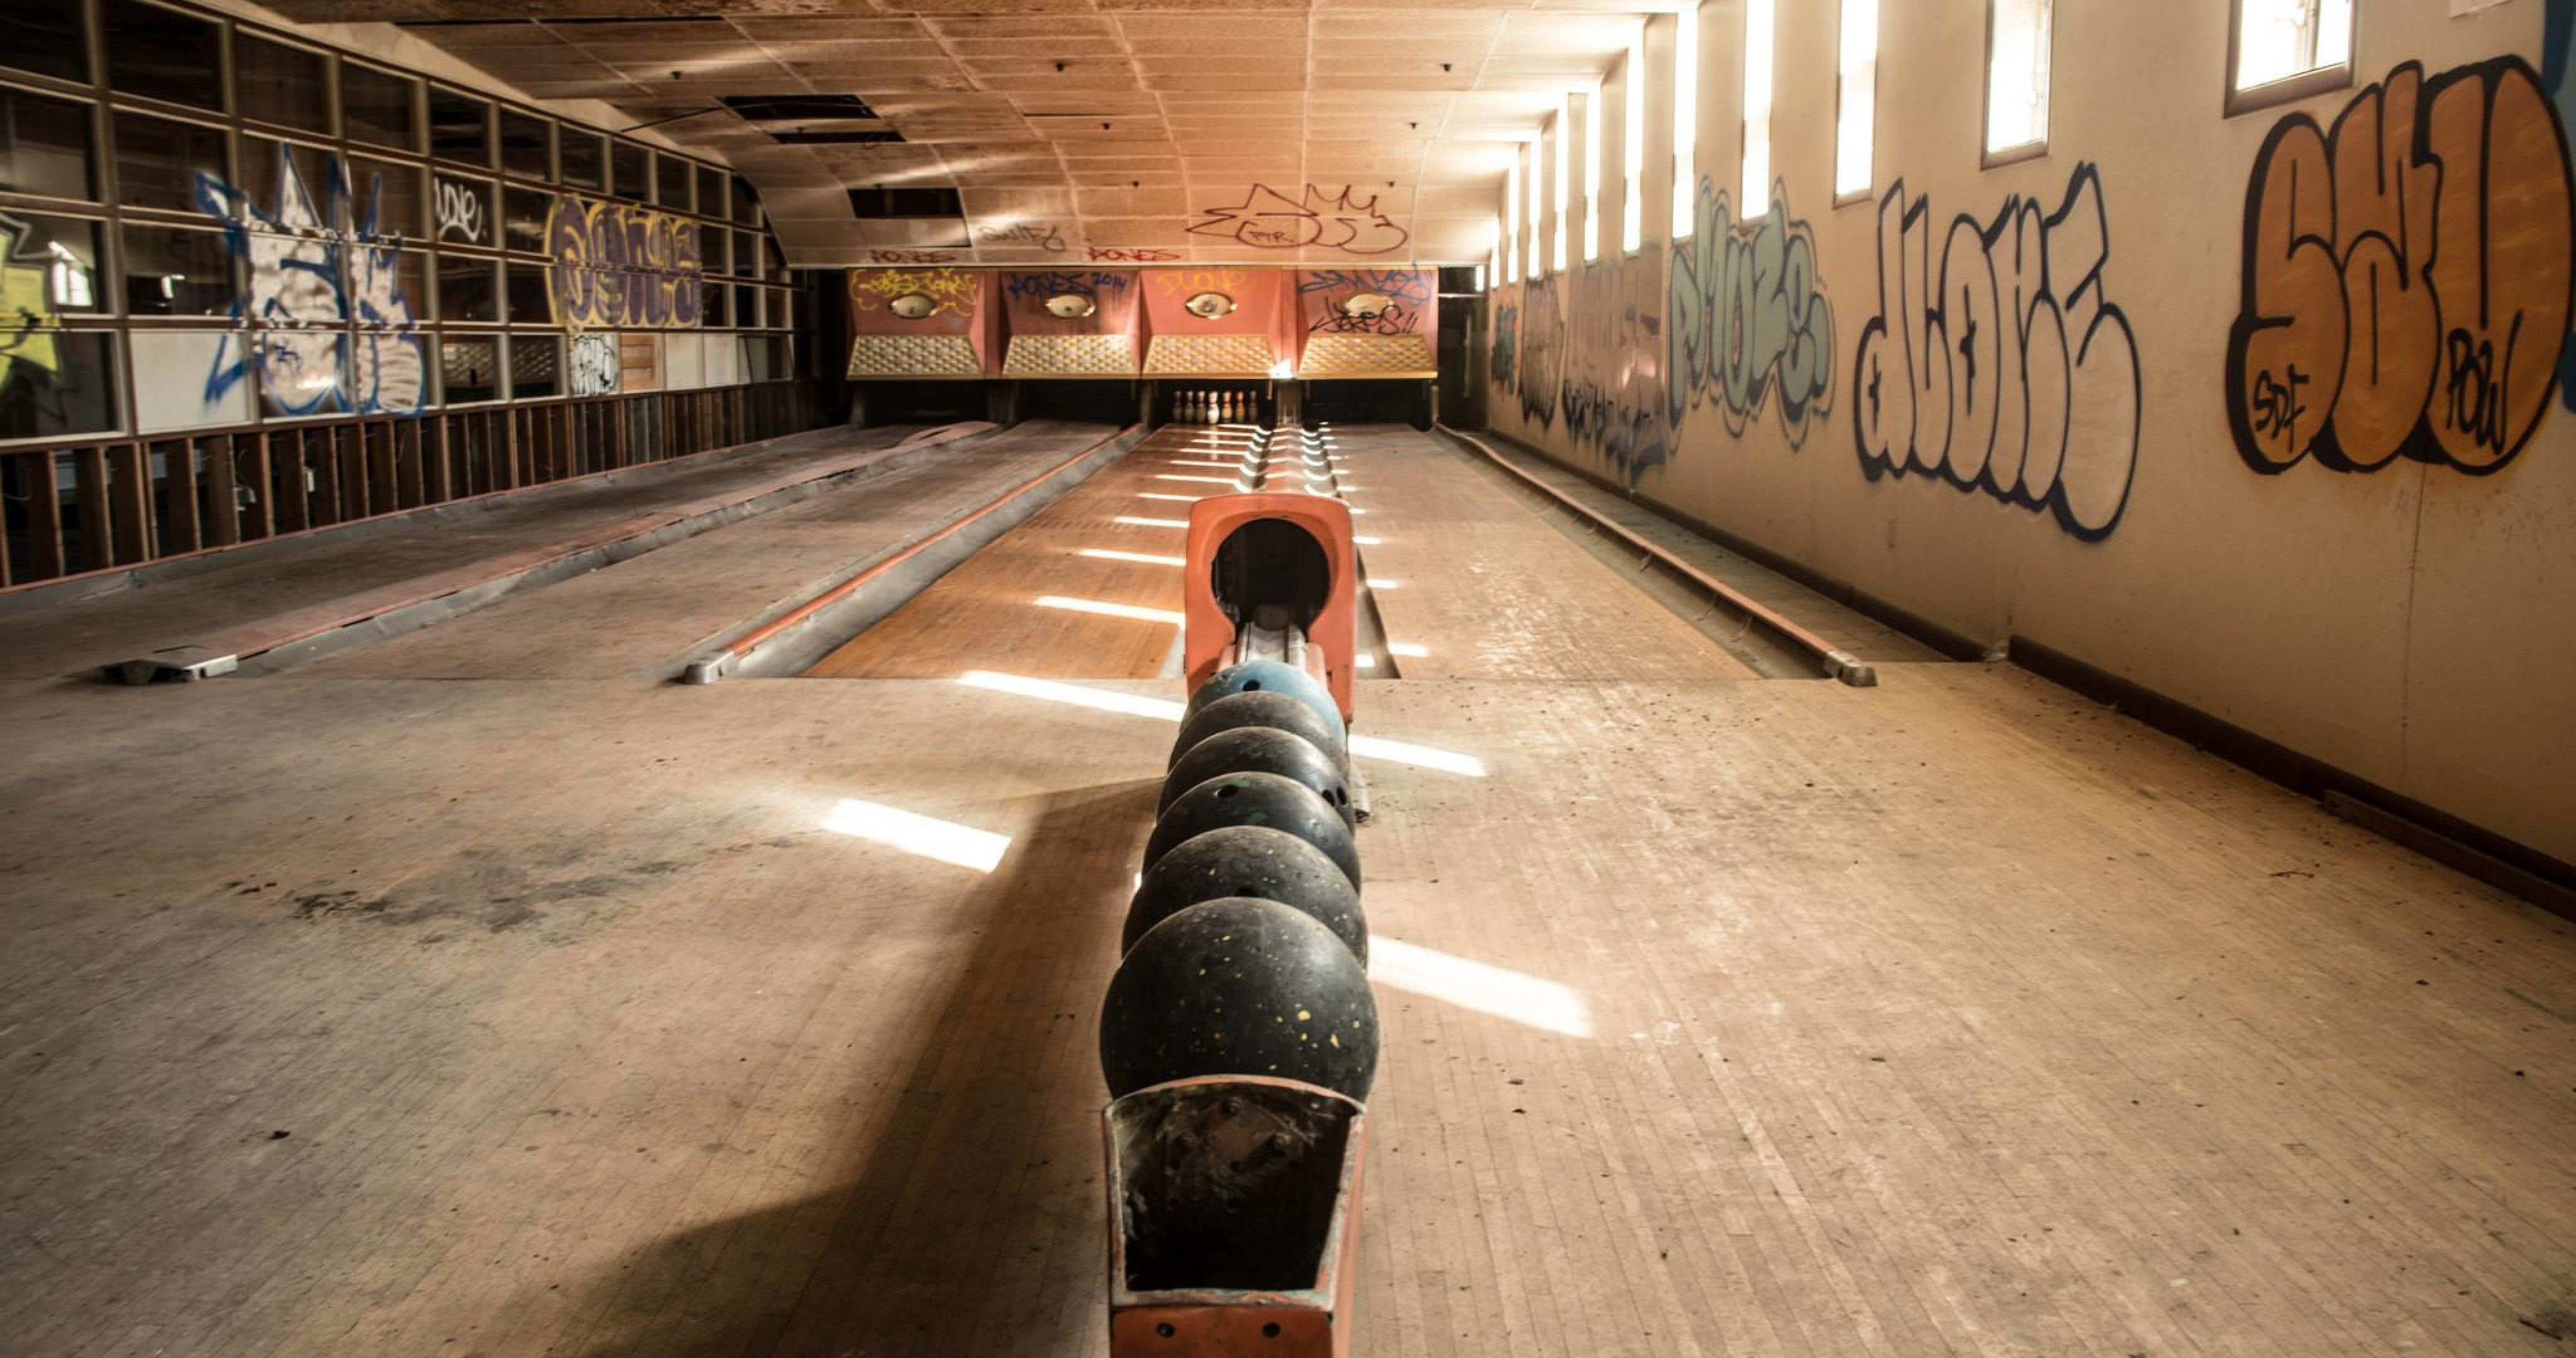 Sports Wallpaper Apps Iphone: Bowling Pretty Sport 4k Ultra Hd Wallpaper (With Images